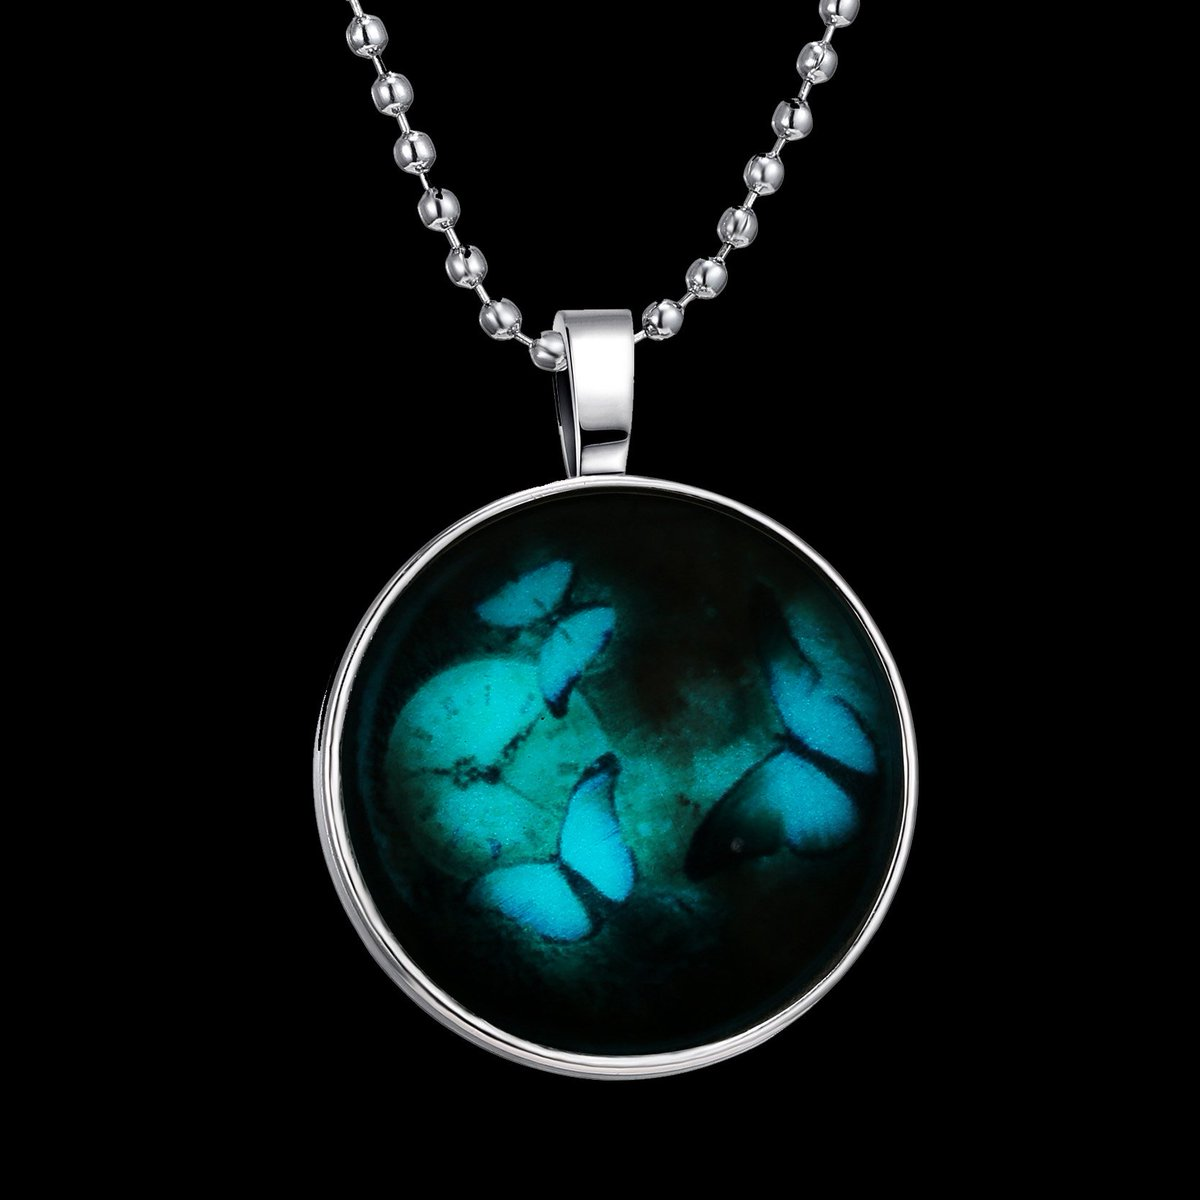 Twitter Giveaway! Winner will be chosen on Monday for this GLOW pendant! Retweet to enter. https://t.co/V8nB2MKhdq https://t.co/89leIe5Lm8